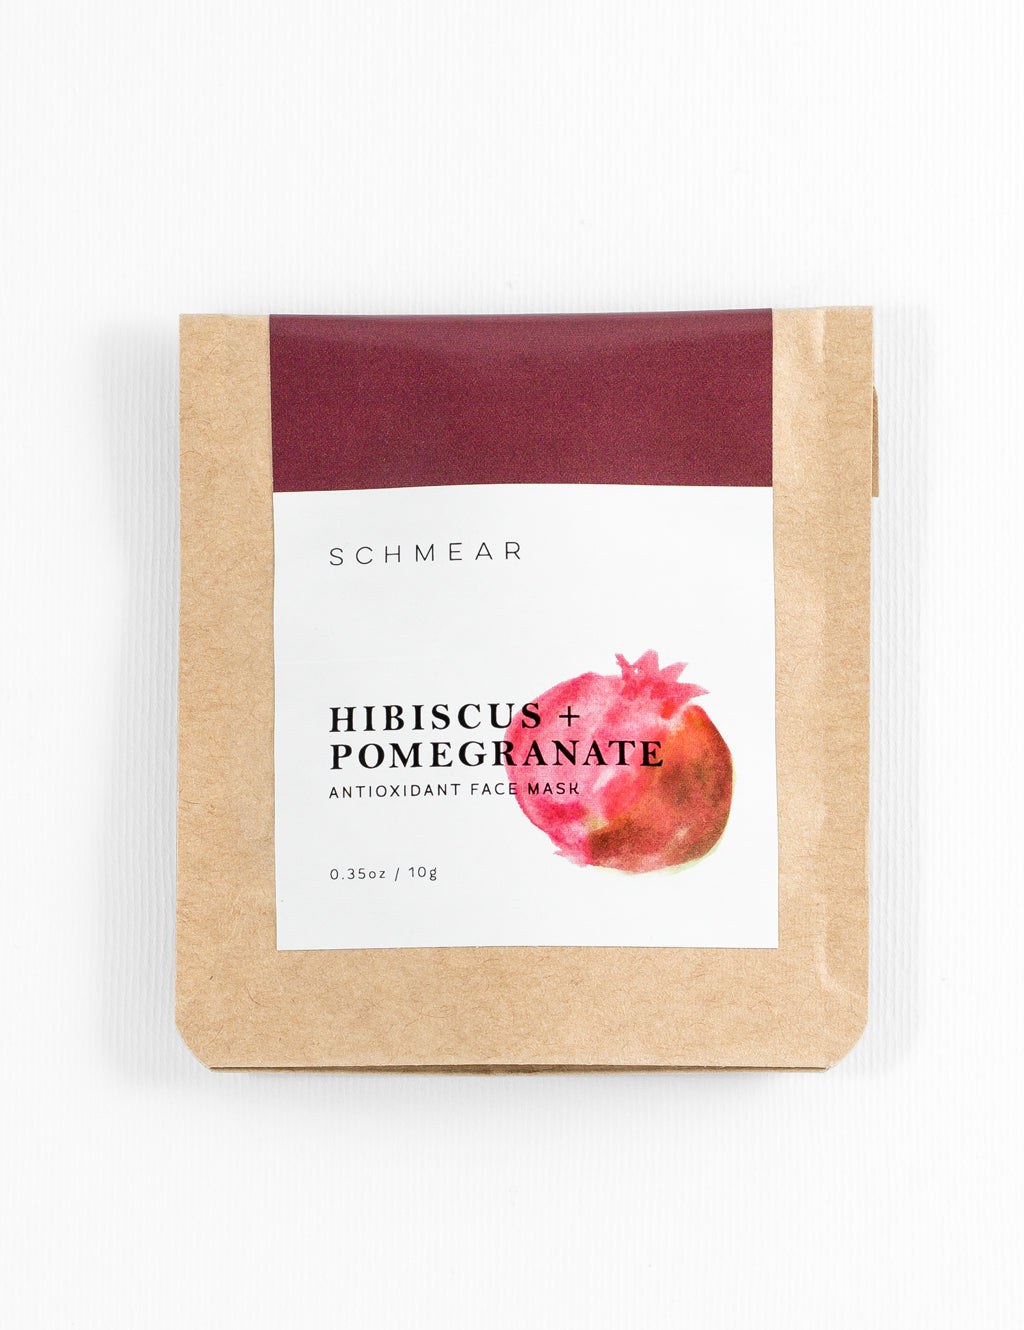 Hibiscus Pomegranate Face Mask Mini Size Skincare